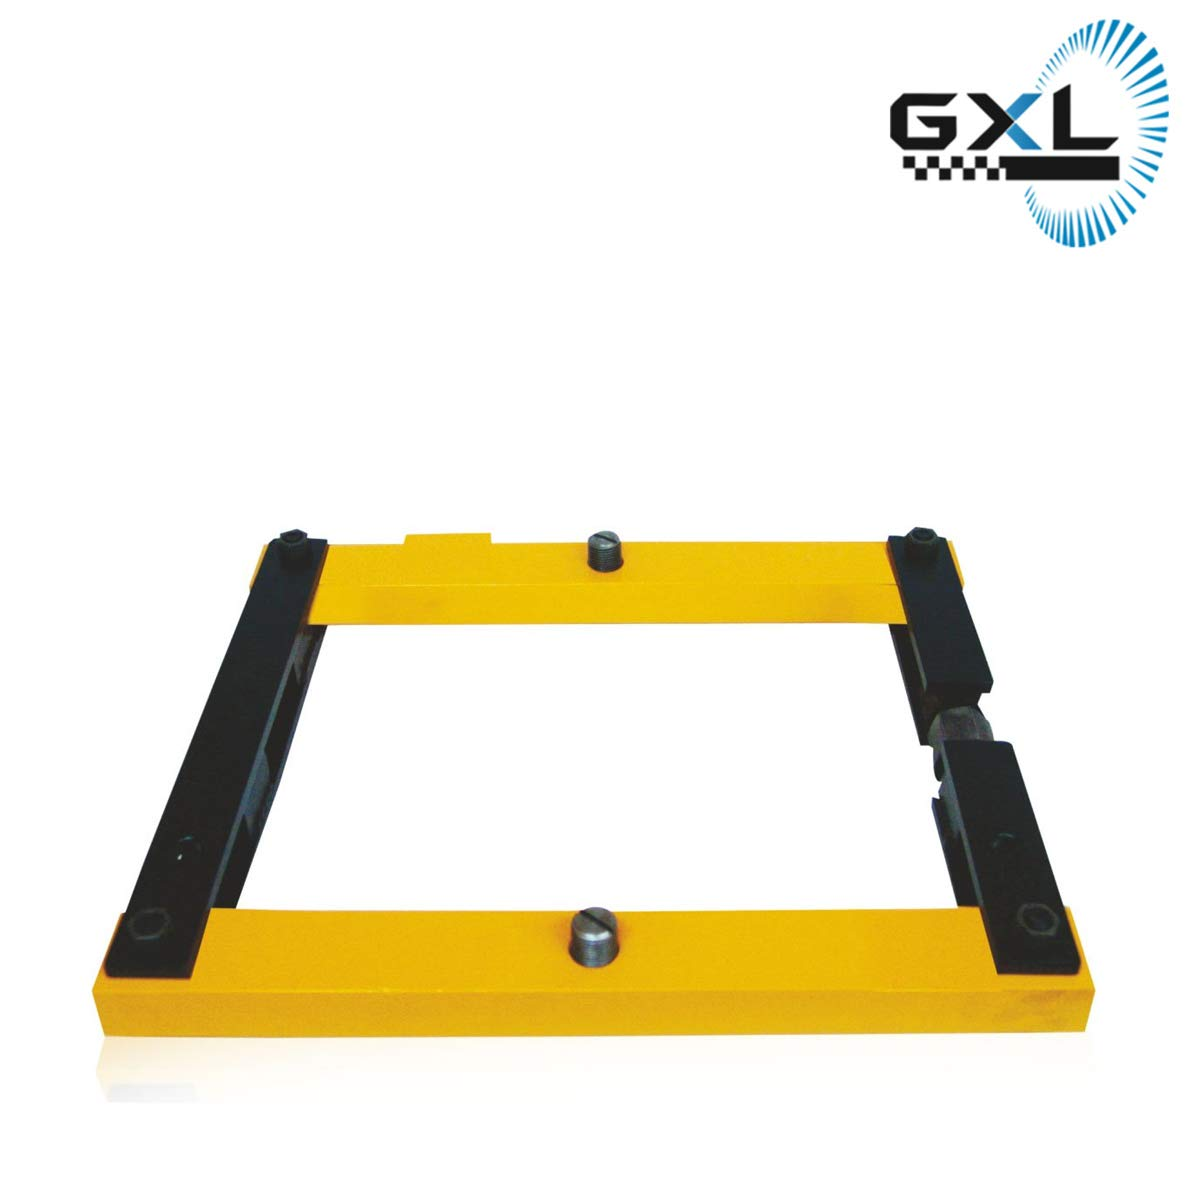 GXL Differential Housing Spreader tool for Dana 30 44 60 70 and 80 Series by GXL (Image #1)